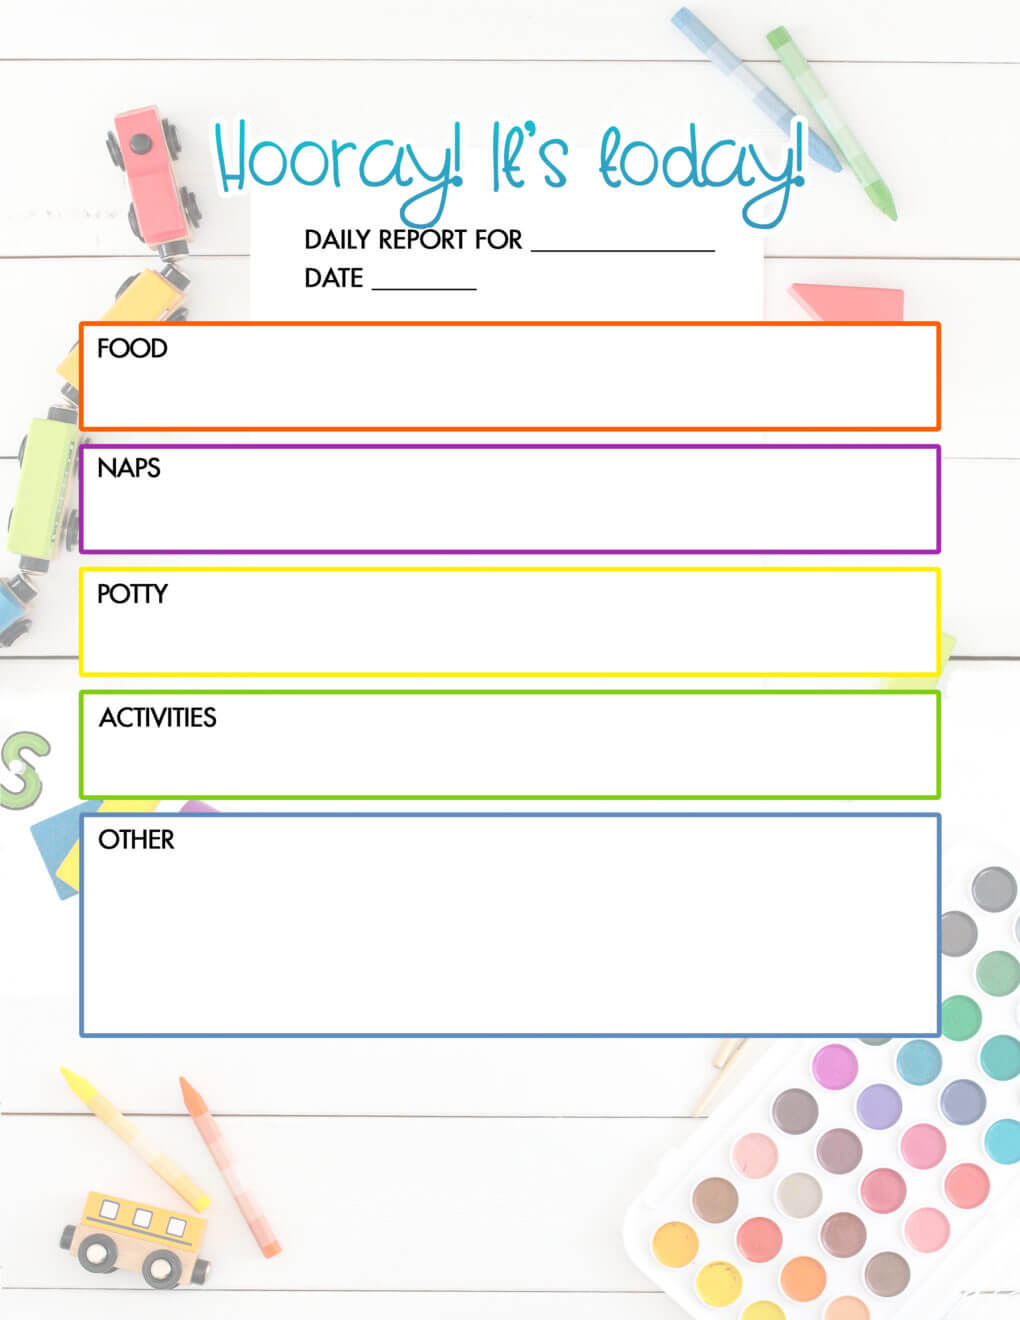 Daycare Activity Sheet Worksheets Planning Sheets For With Regard To Daycare Infant Daily Report Template